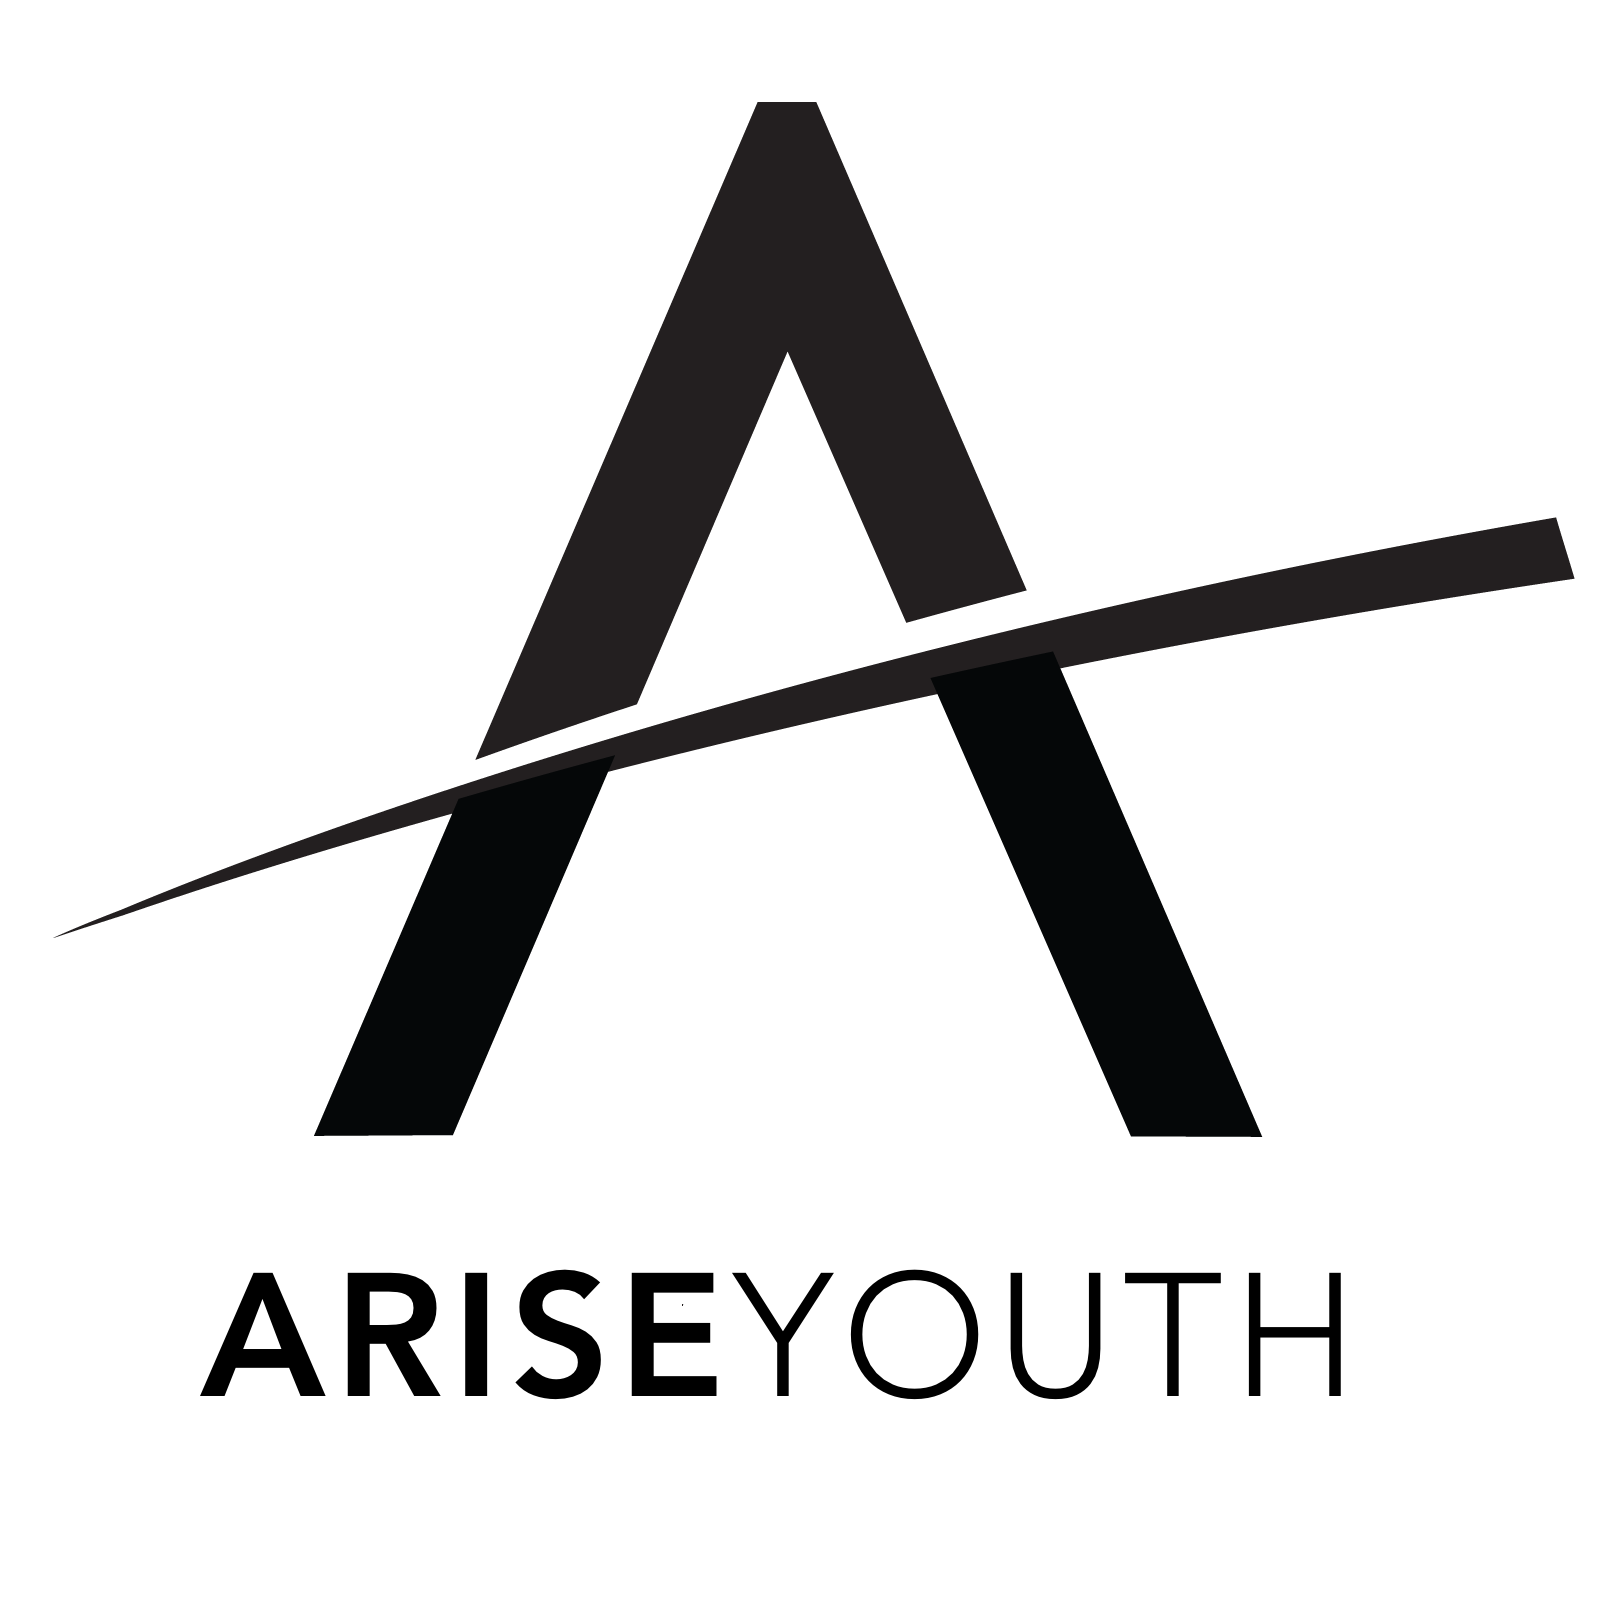 ariseyouthlogo